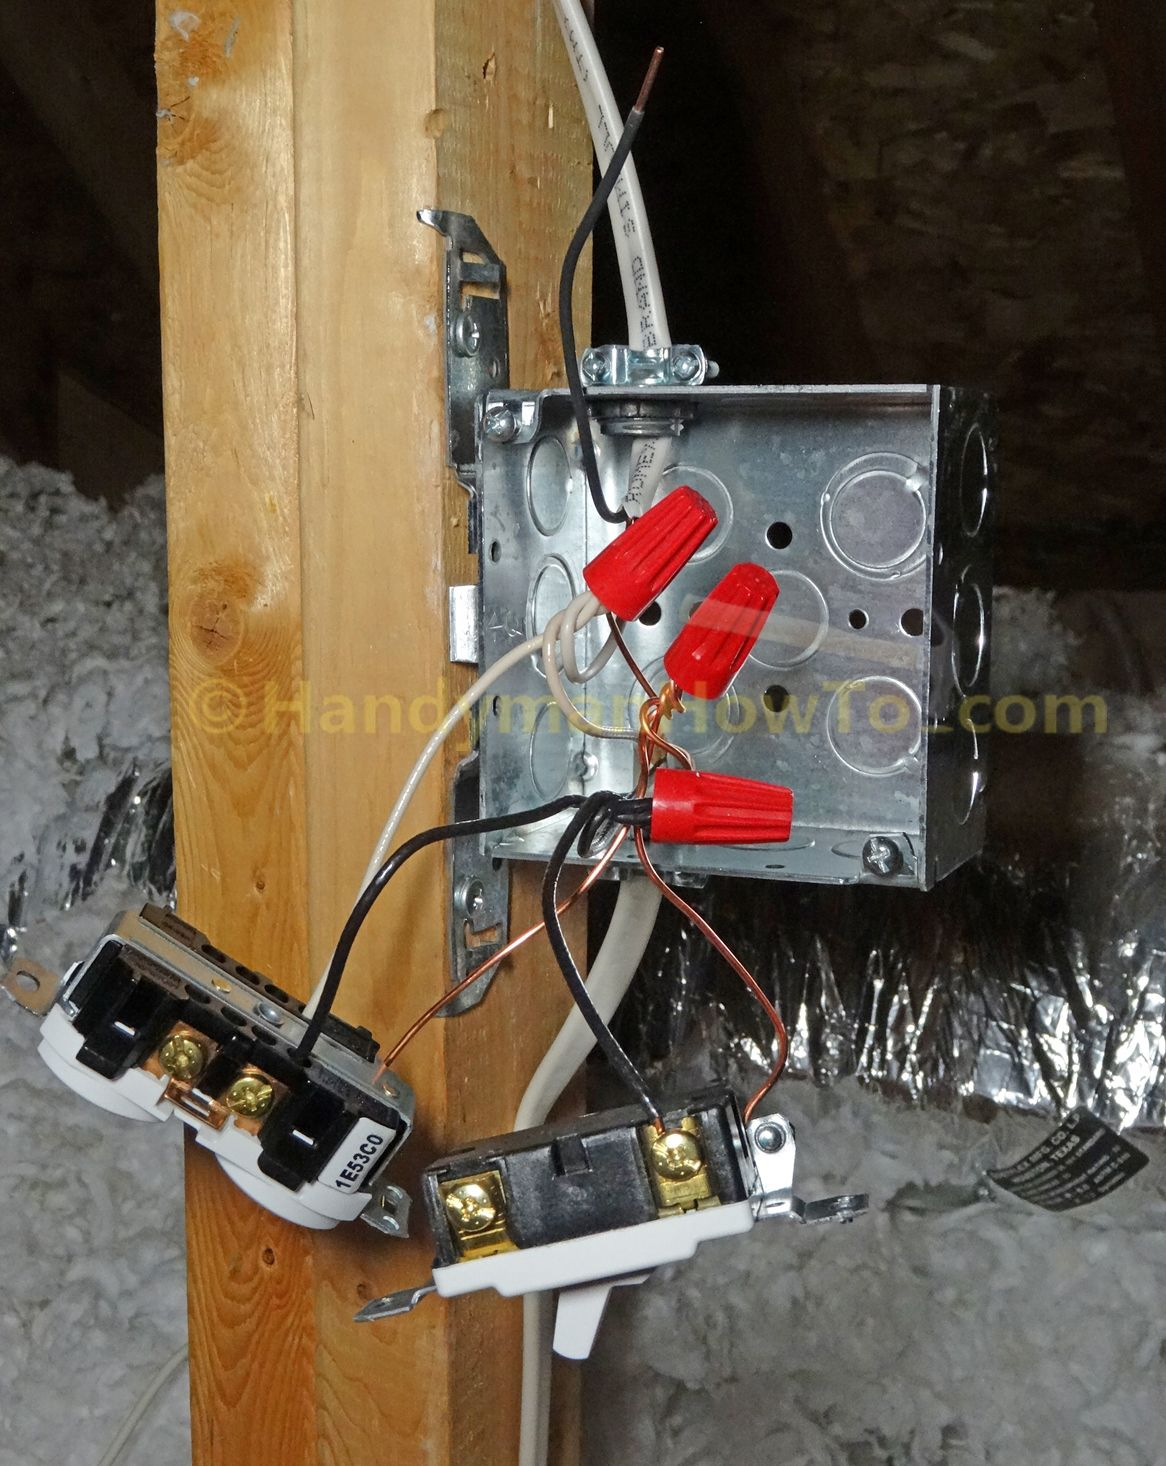 attic light and outlet junction box wiring connections house rh pinterest com Splicing Electrical Wires Junction Box Electrical Junction Box in Attic